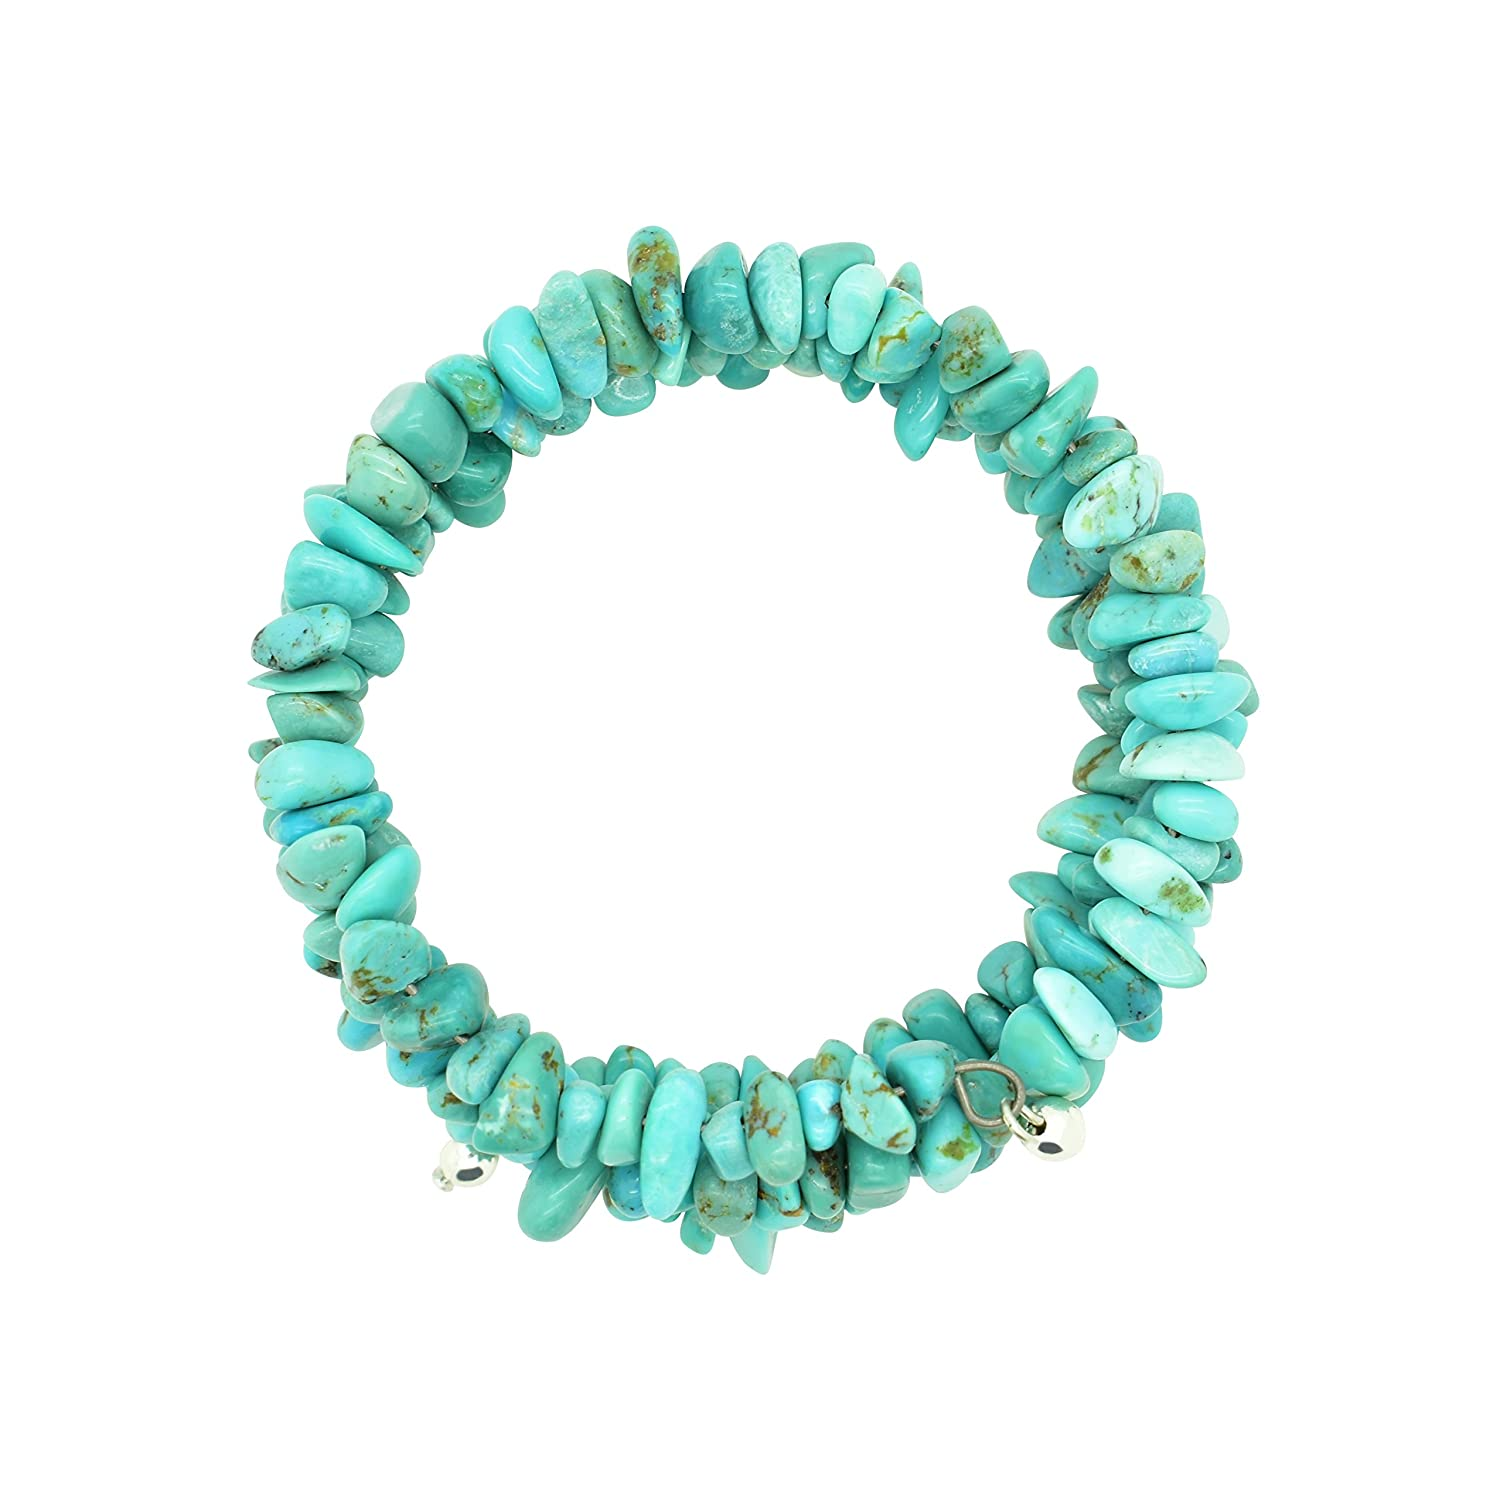 Amazon.com: Bluejoy Jewelry Genuine Natural Turquoise Memory-Wire ...